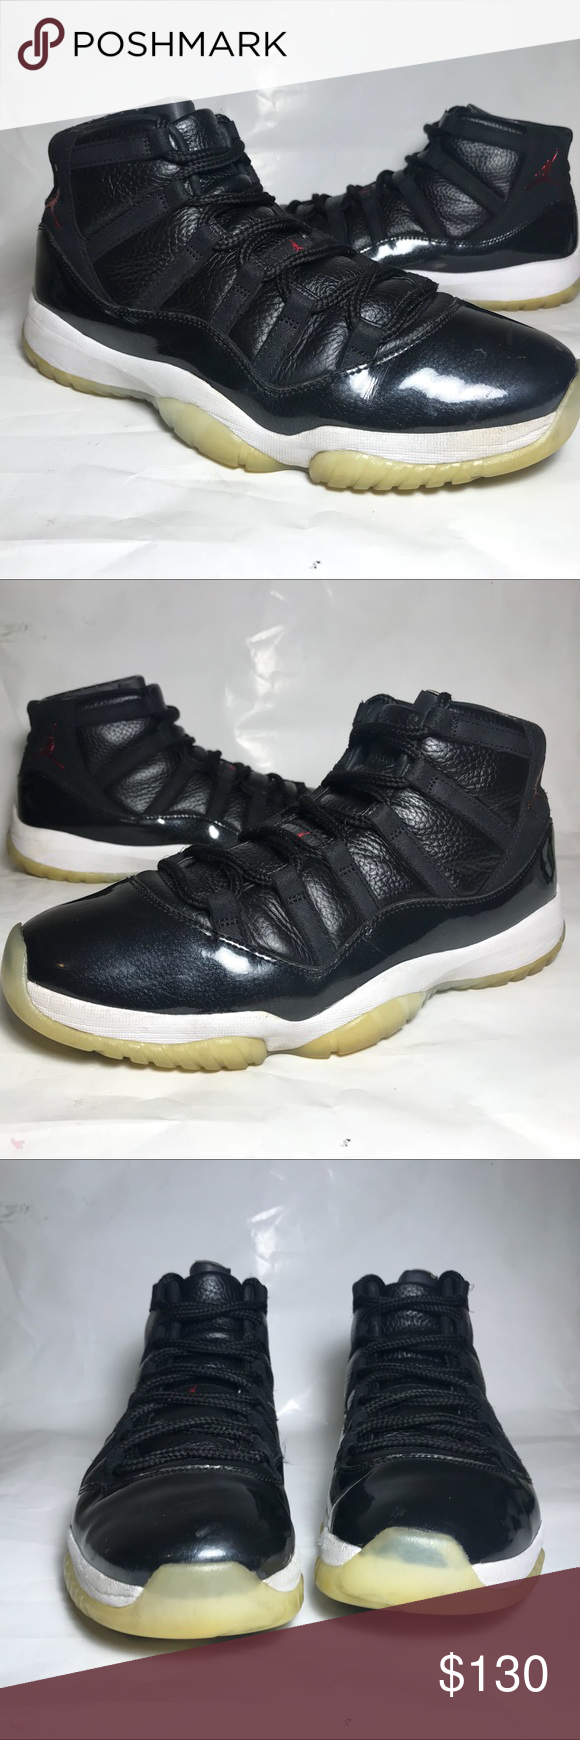 "14ed8254563e26 Air Jordan 11 ""72-10"" One of THE best shoes ever to be released!! Great Jordan  11s! The bottoms are yellowing but the sneakers have minimal creases and no  ..."